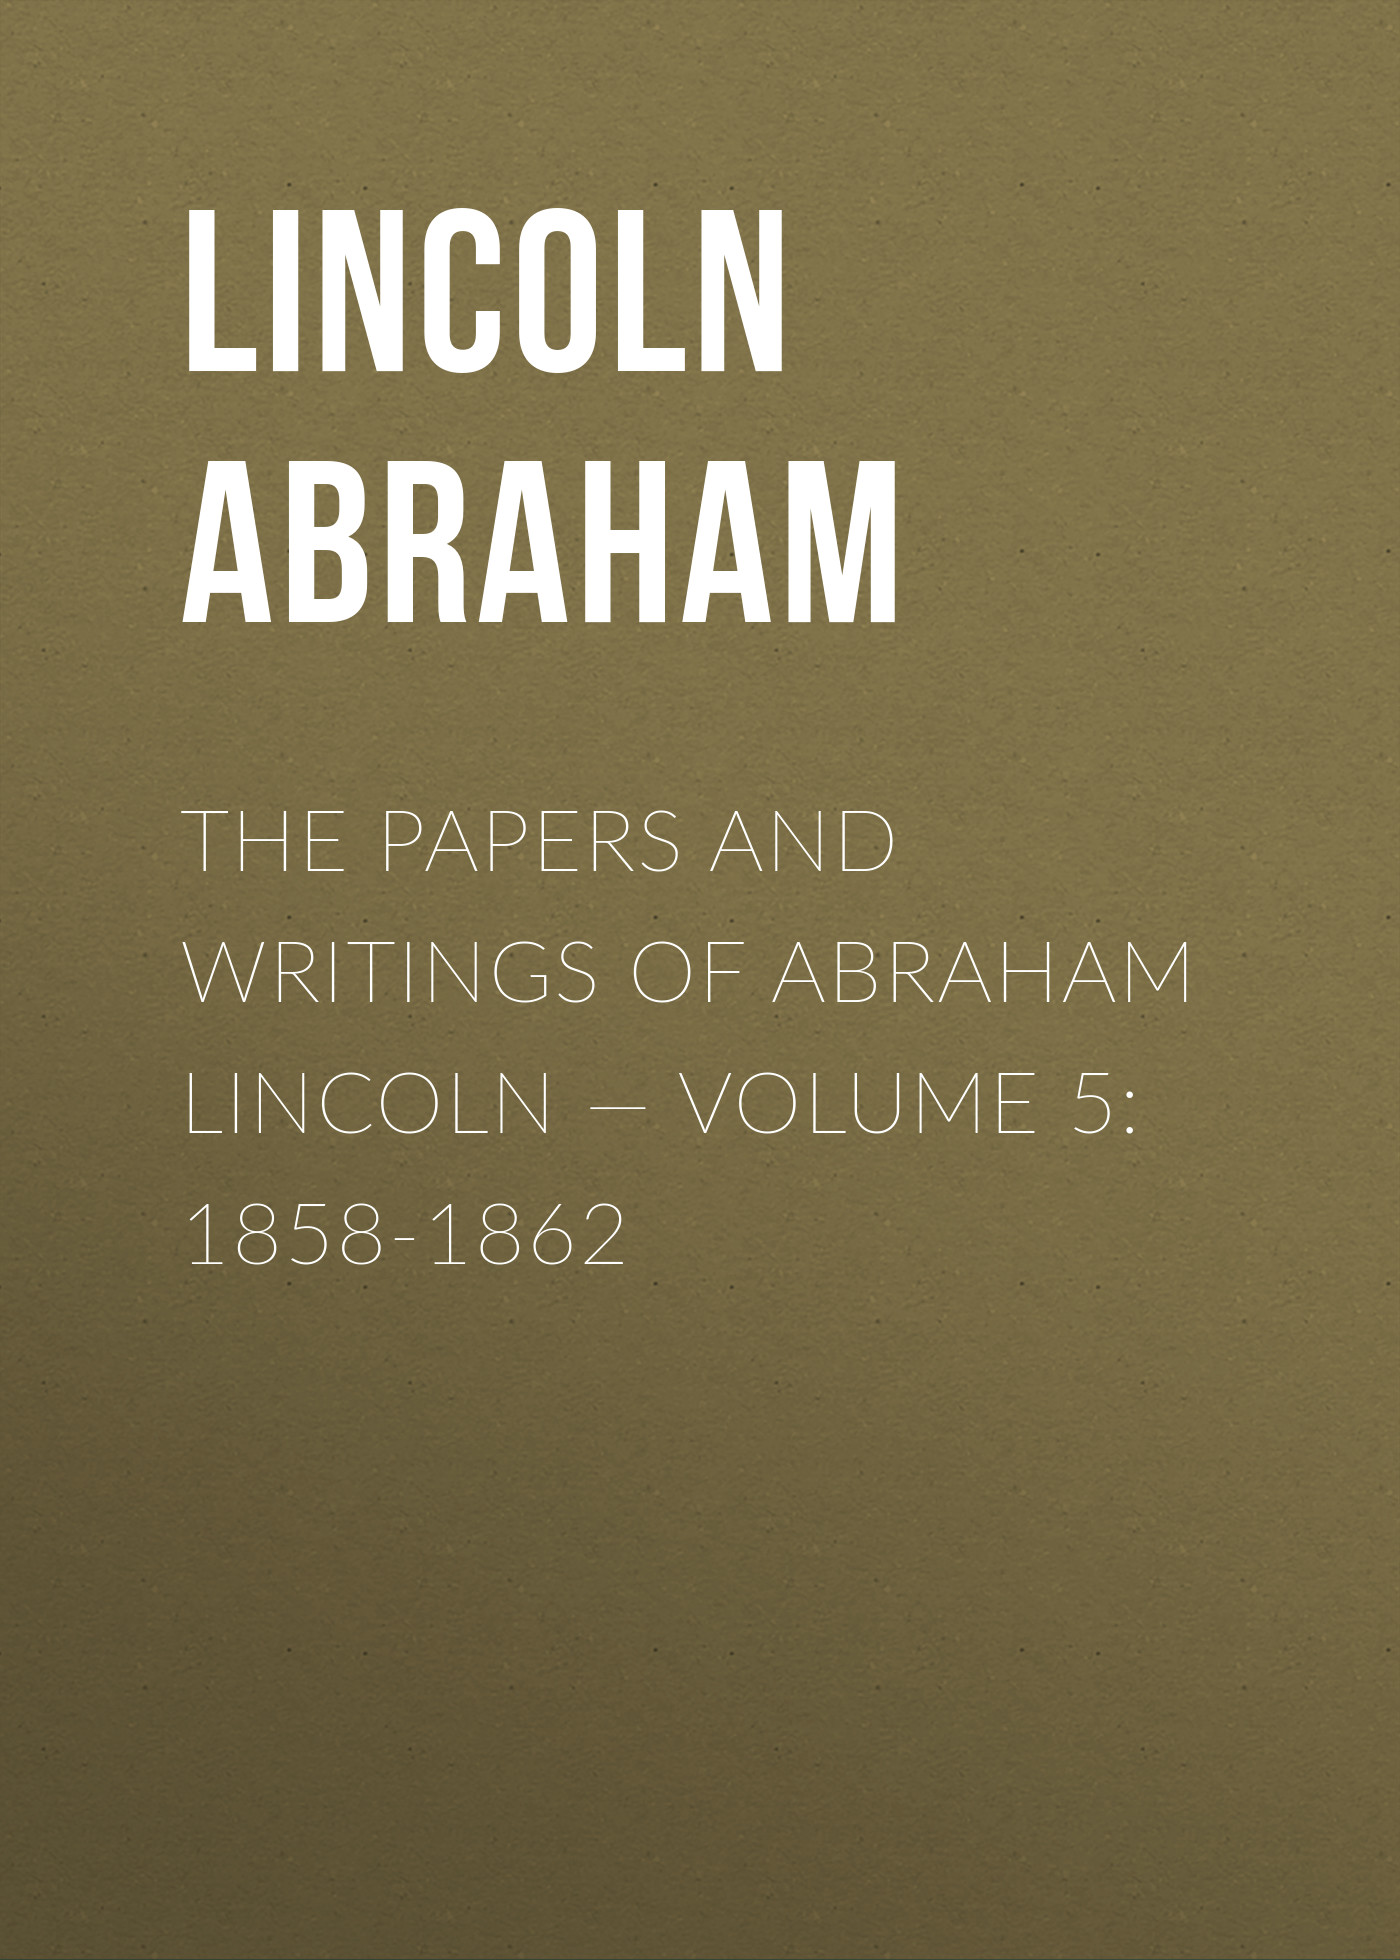 Lincoln Abraham The Papers And Writings Of Abraham Lincoln — Volume 5: 1858-1862 grahame smith s abraham lincoln vampire hunter